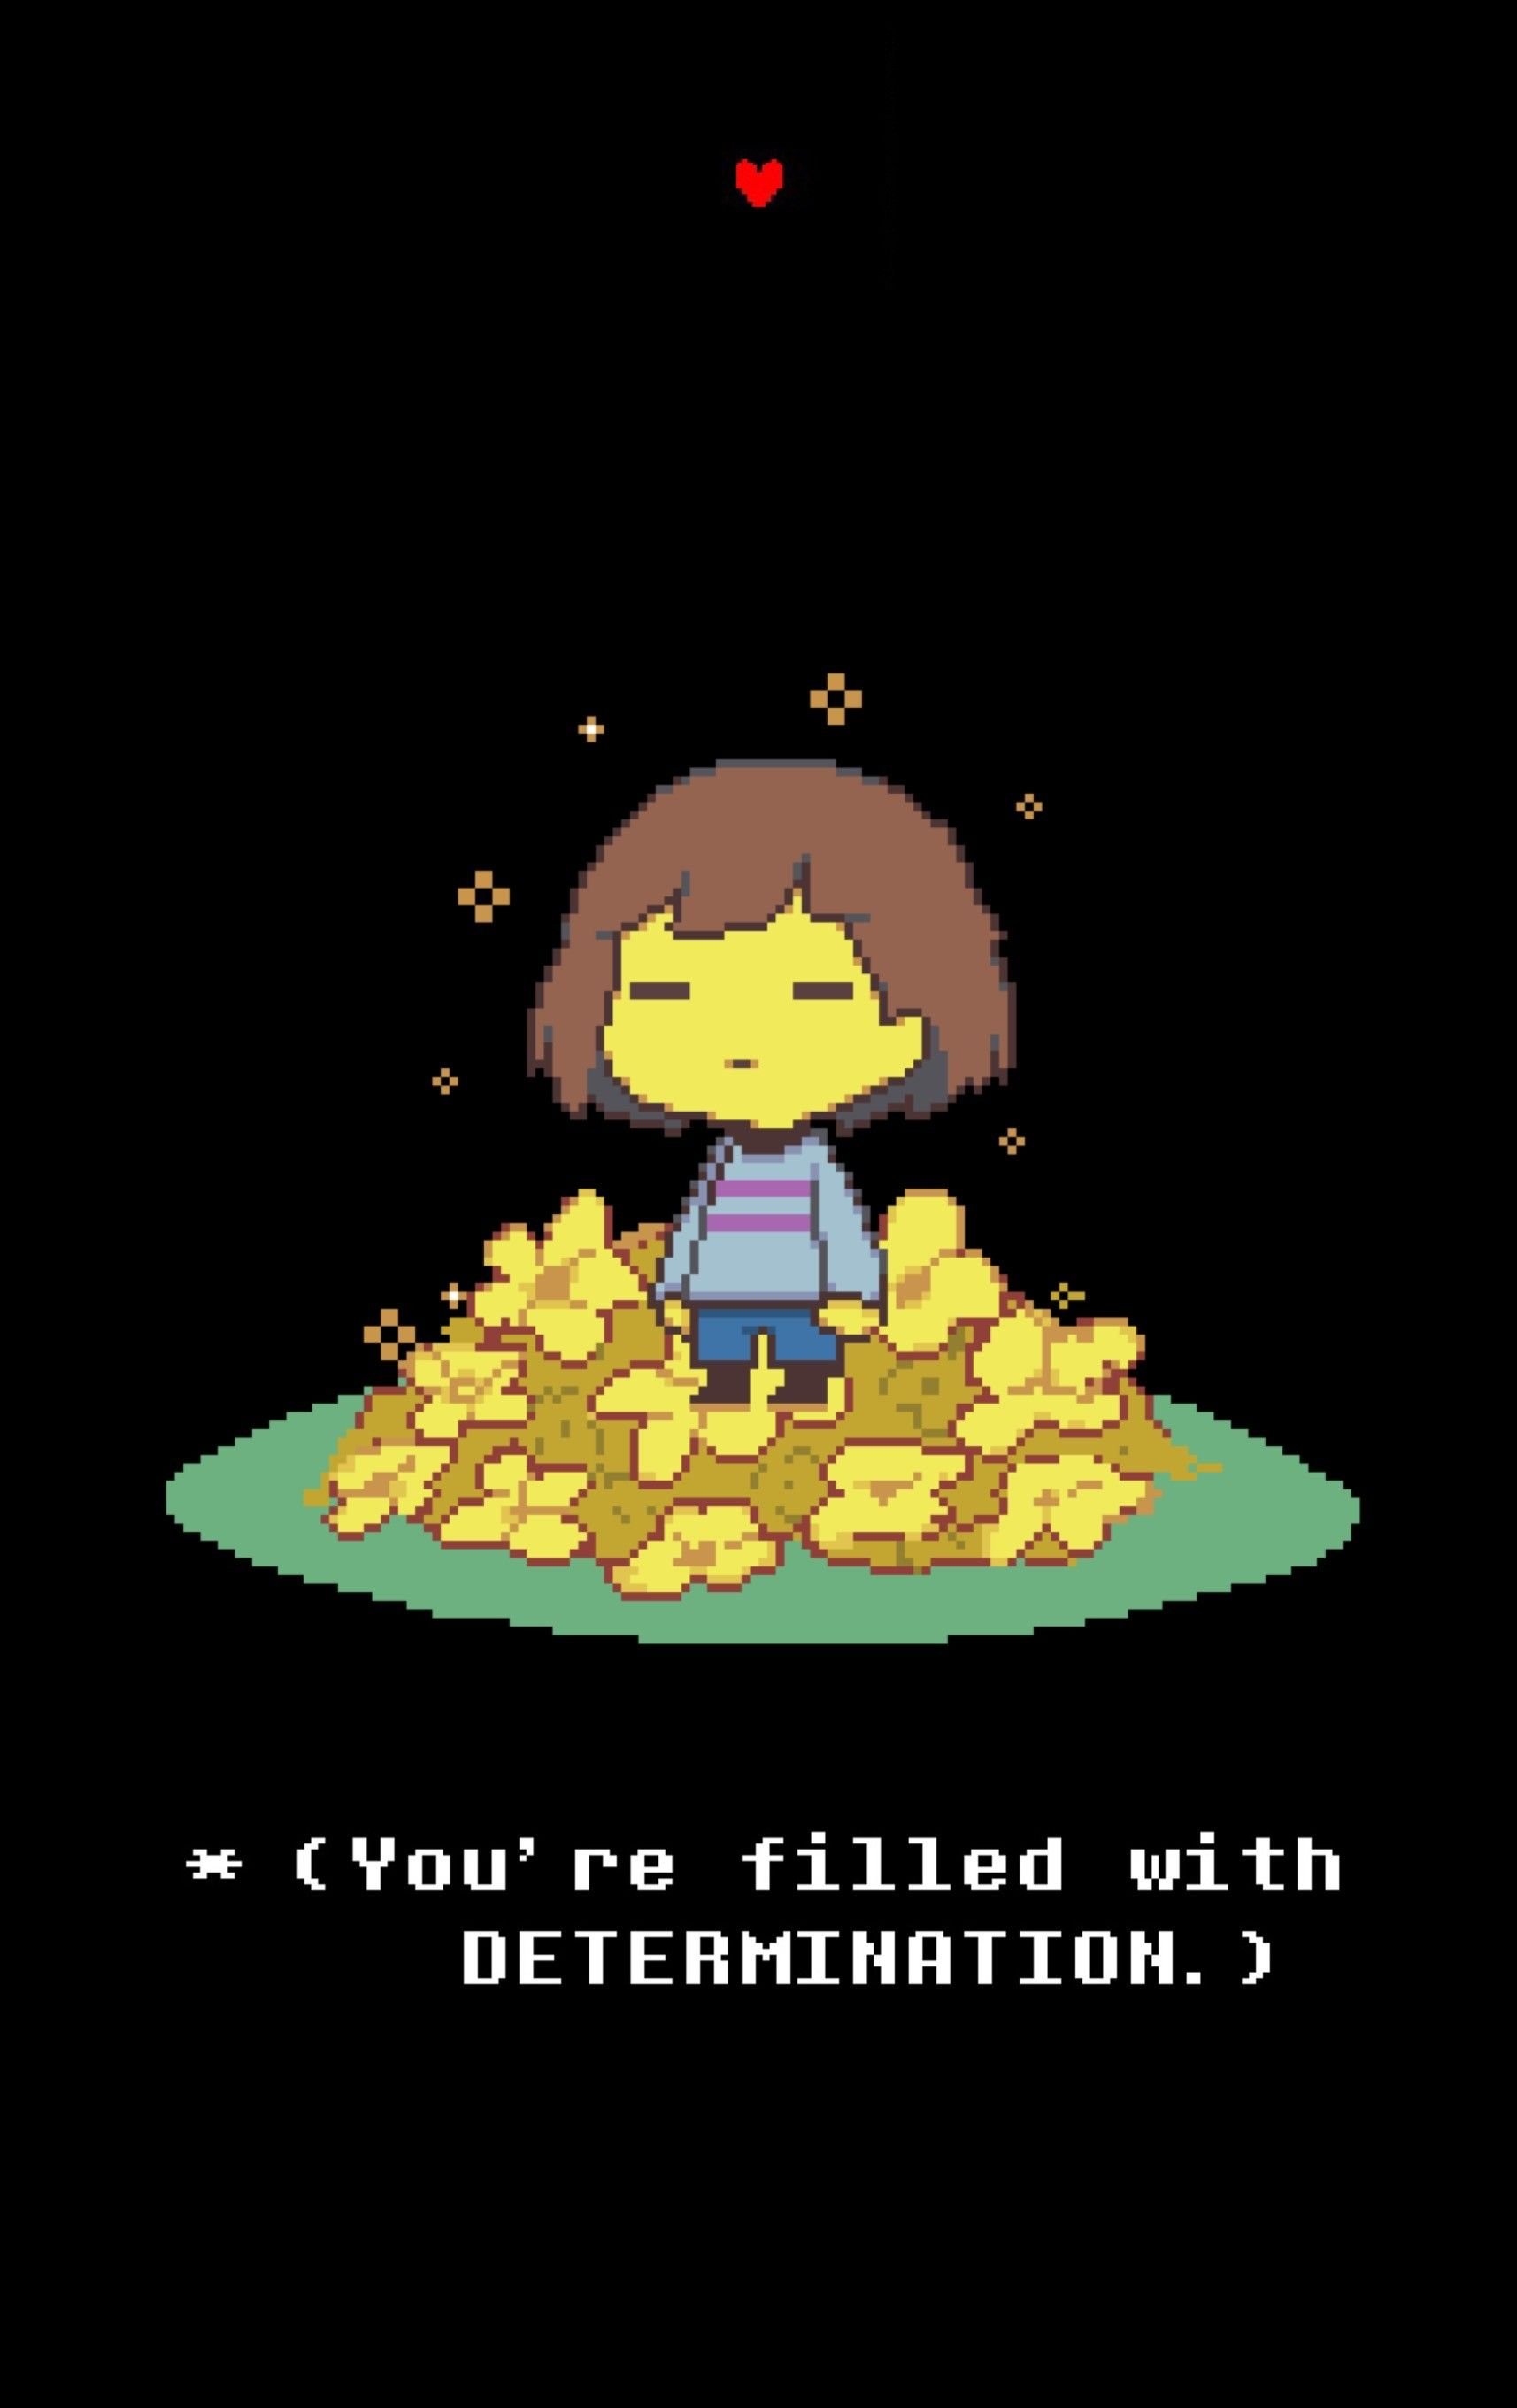 1714x2721 My Undertale Iphone Wallpaper Credits To Boorim On Deviantart For The Lovely Frisk Pixel Art Undertale Pixel Art Undertale Undertale Comic